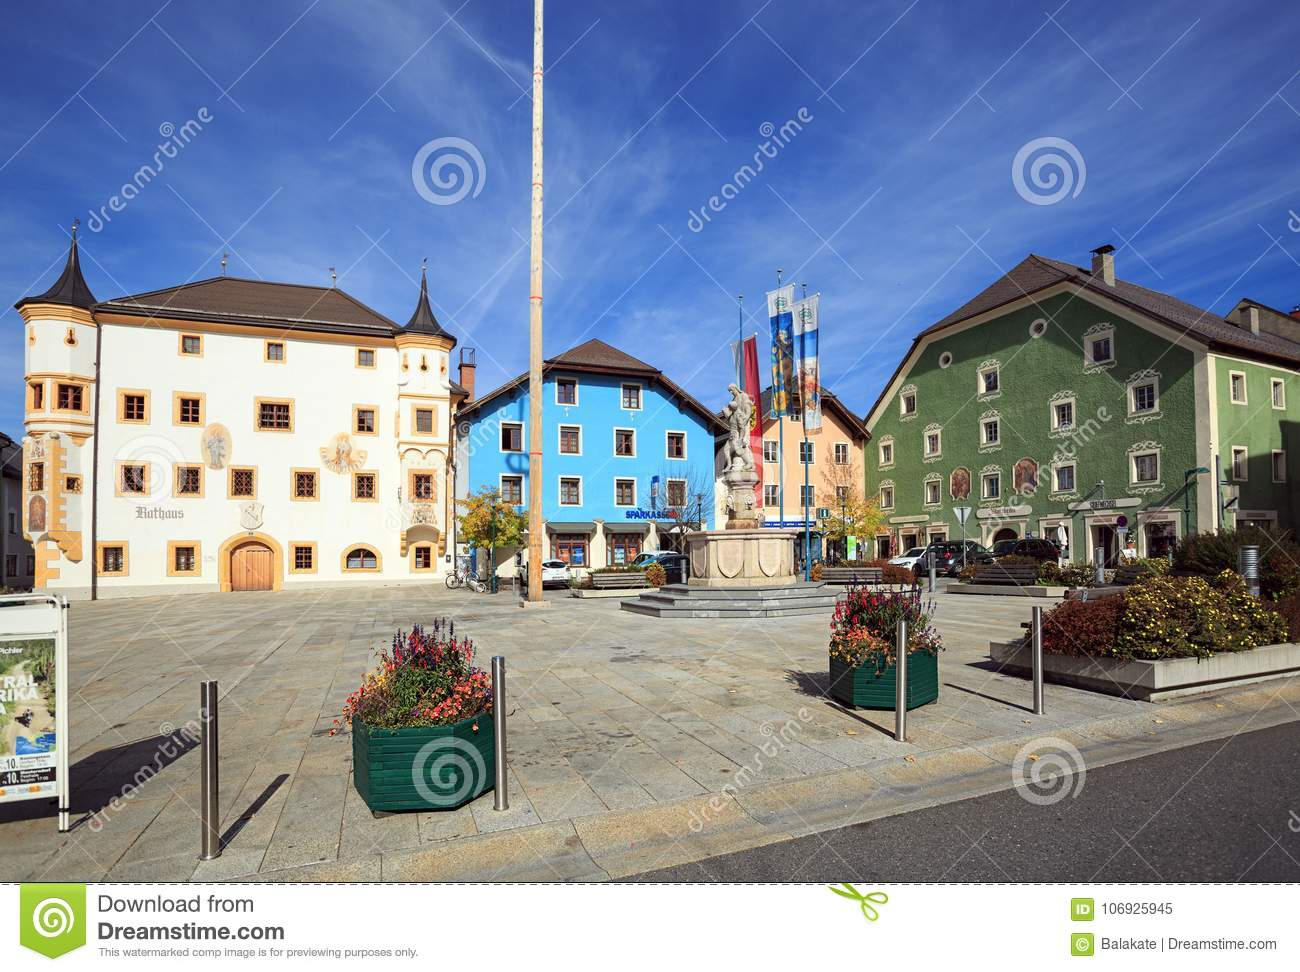 Central square of the market town of Tamsweg, Austria